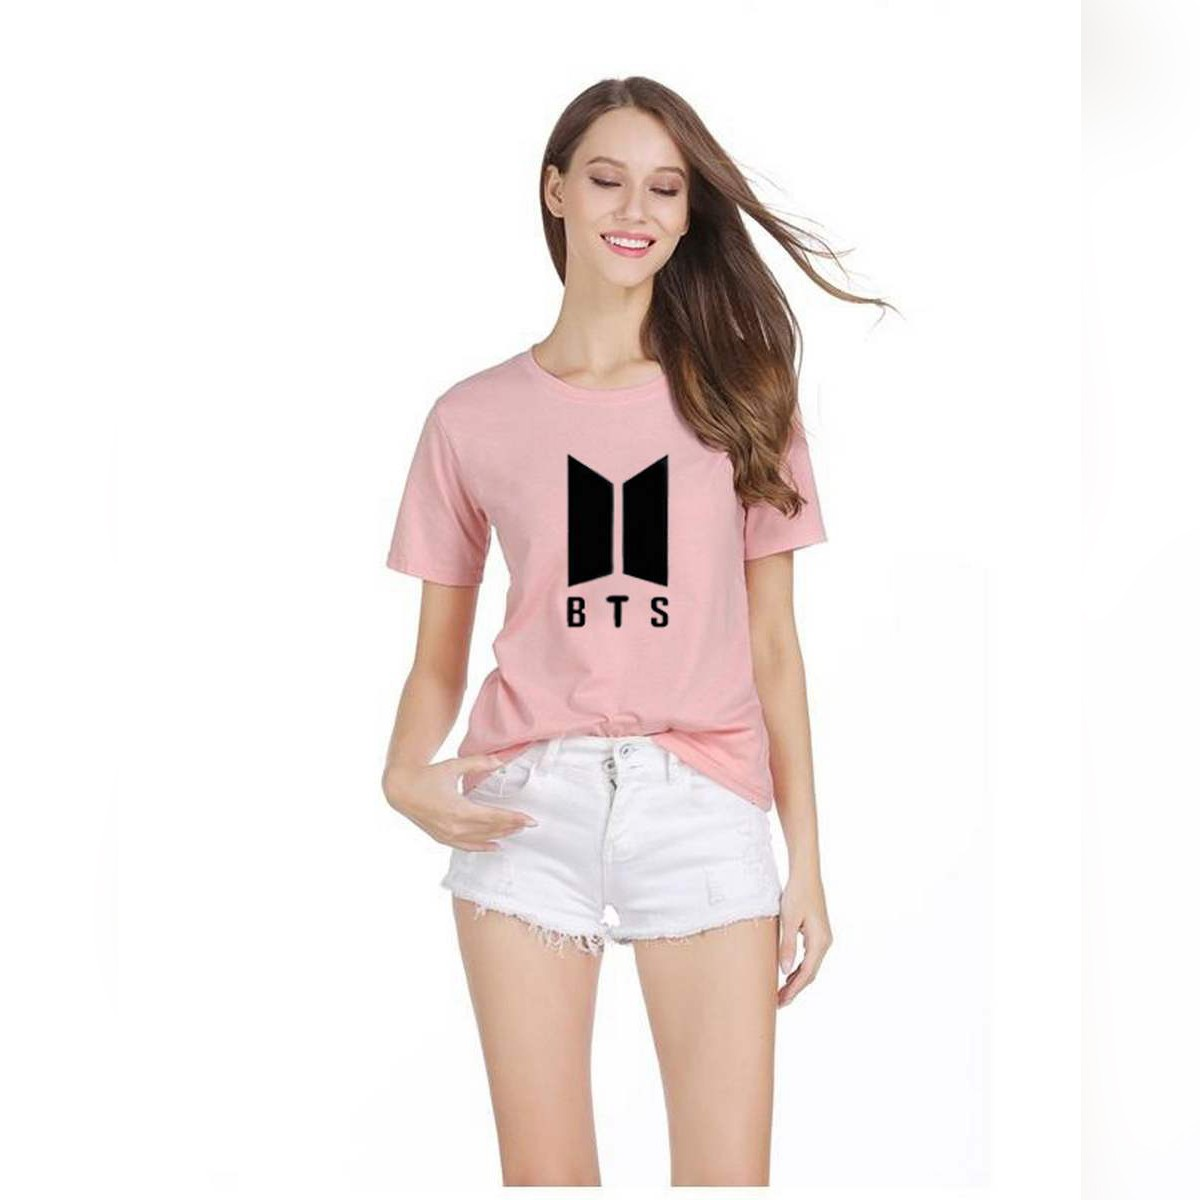 BTS Printed Tshirts Round Neck Casual Cotton Top Tees High Quality Summer T Shirts For Women Girls - PINK